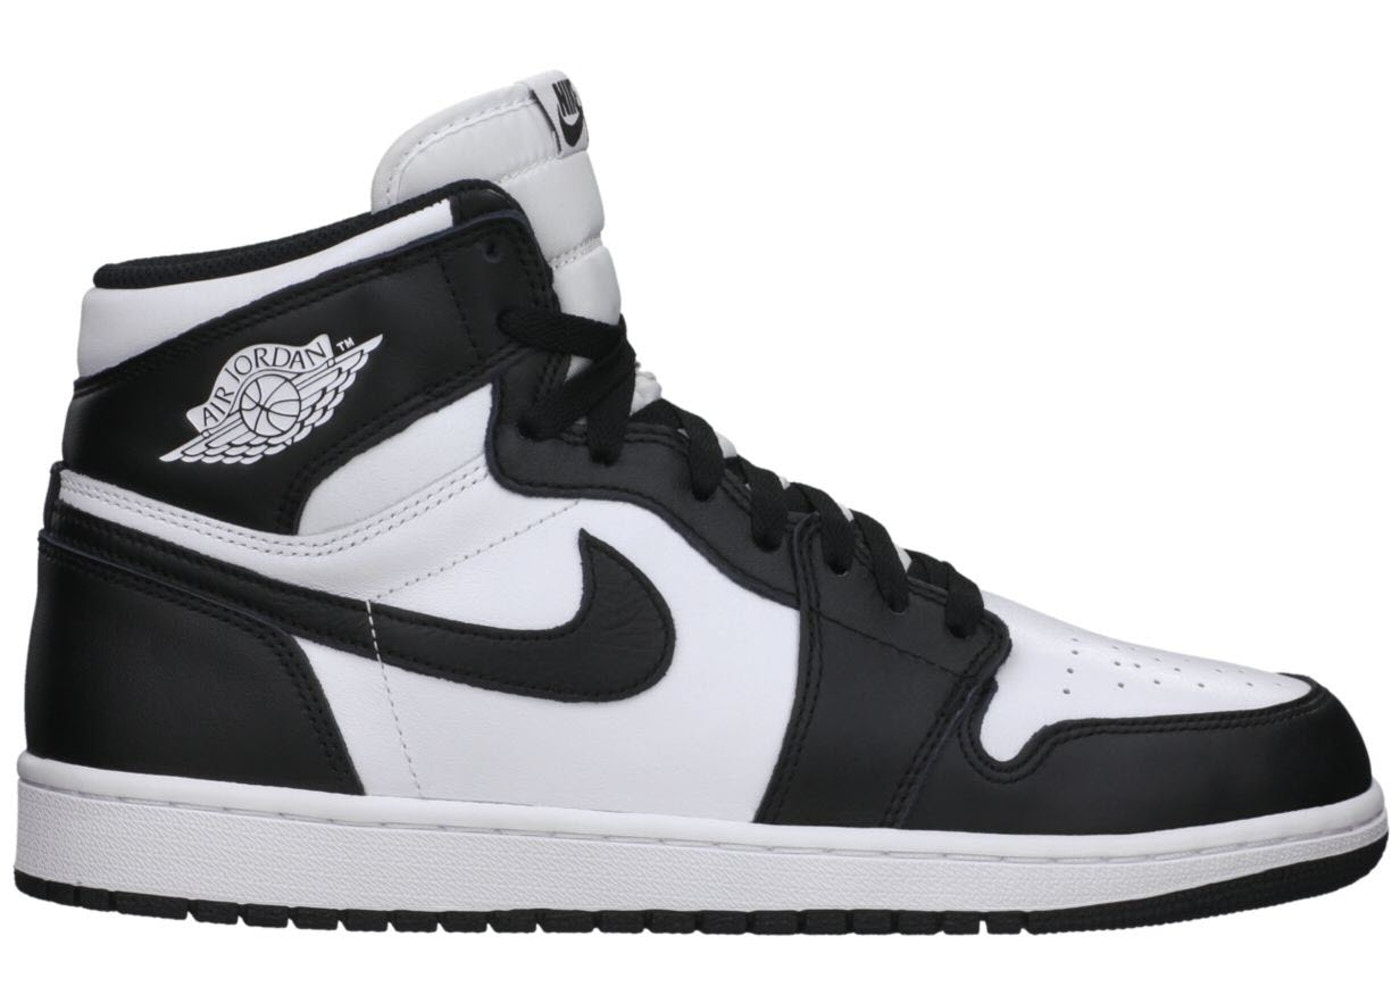 Jordan 1 Retro Black White (2014) - 555088-010 4437f9aa9